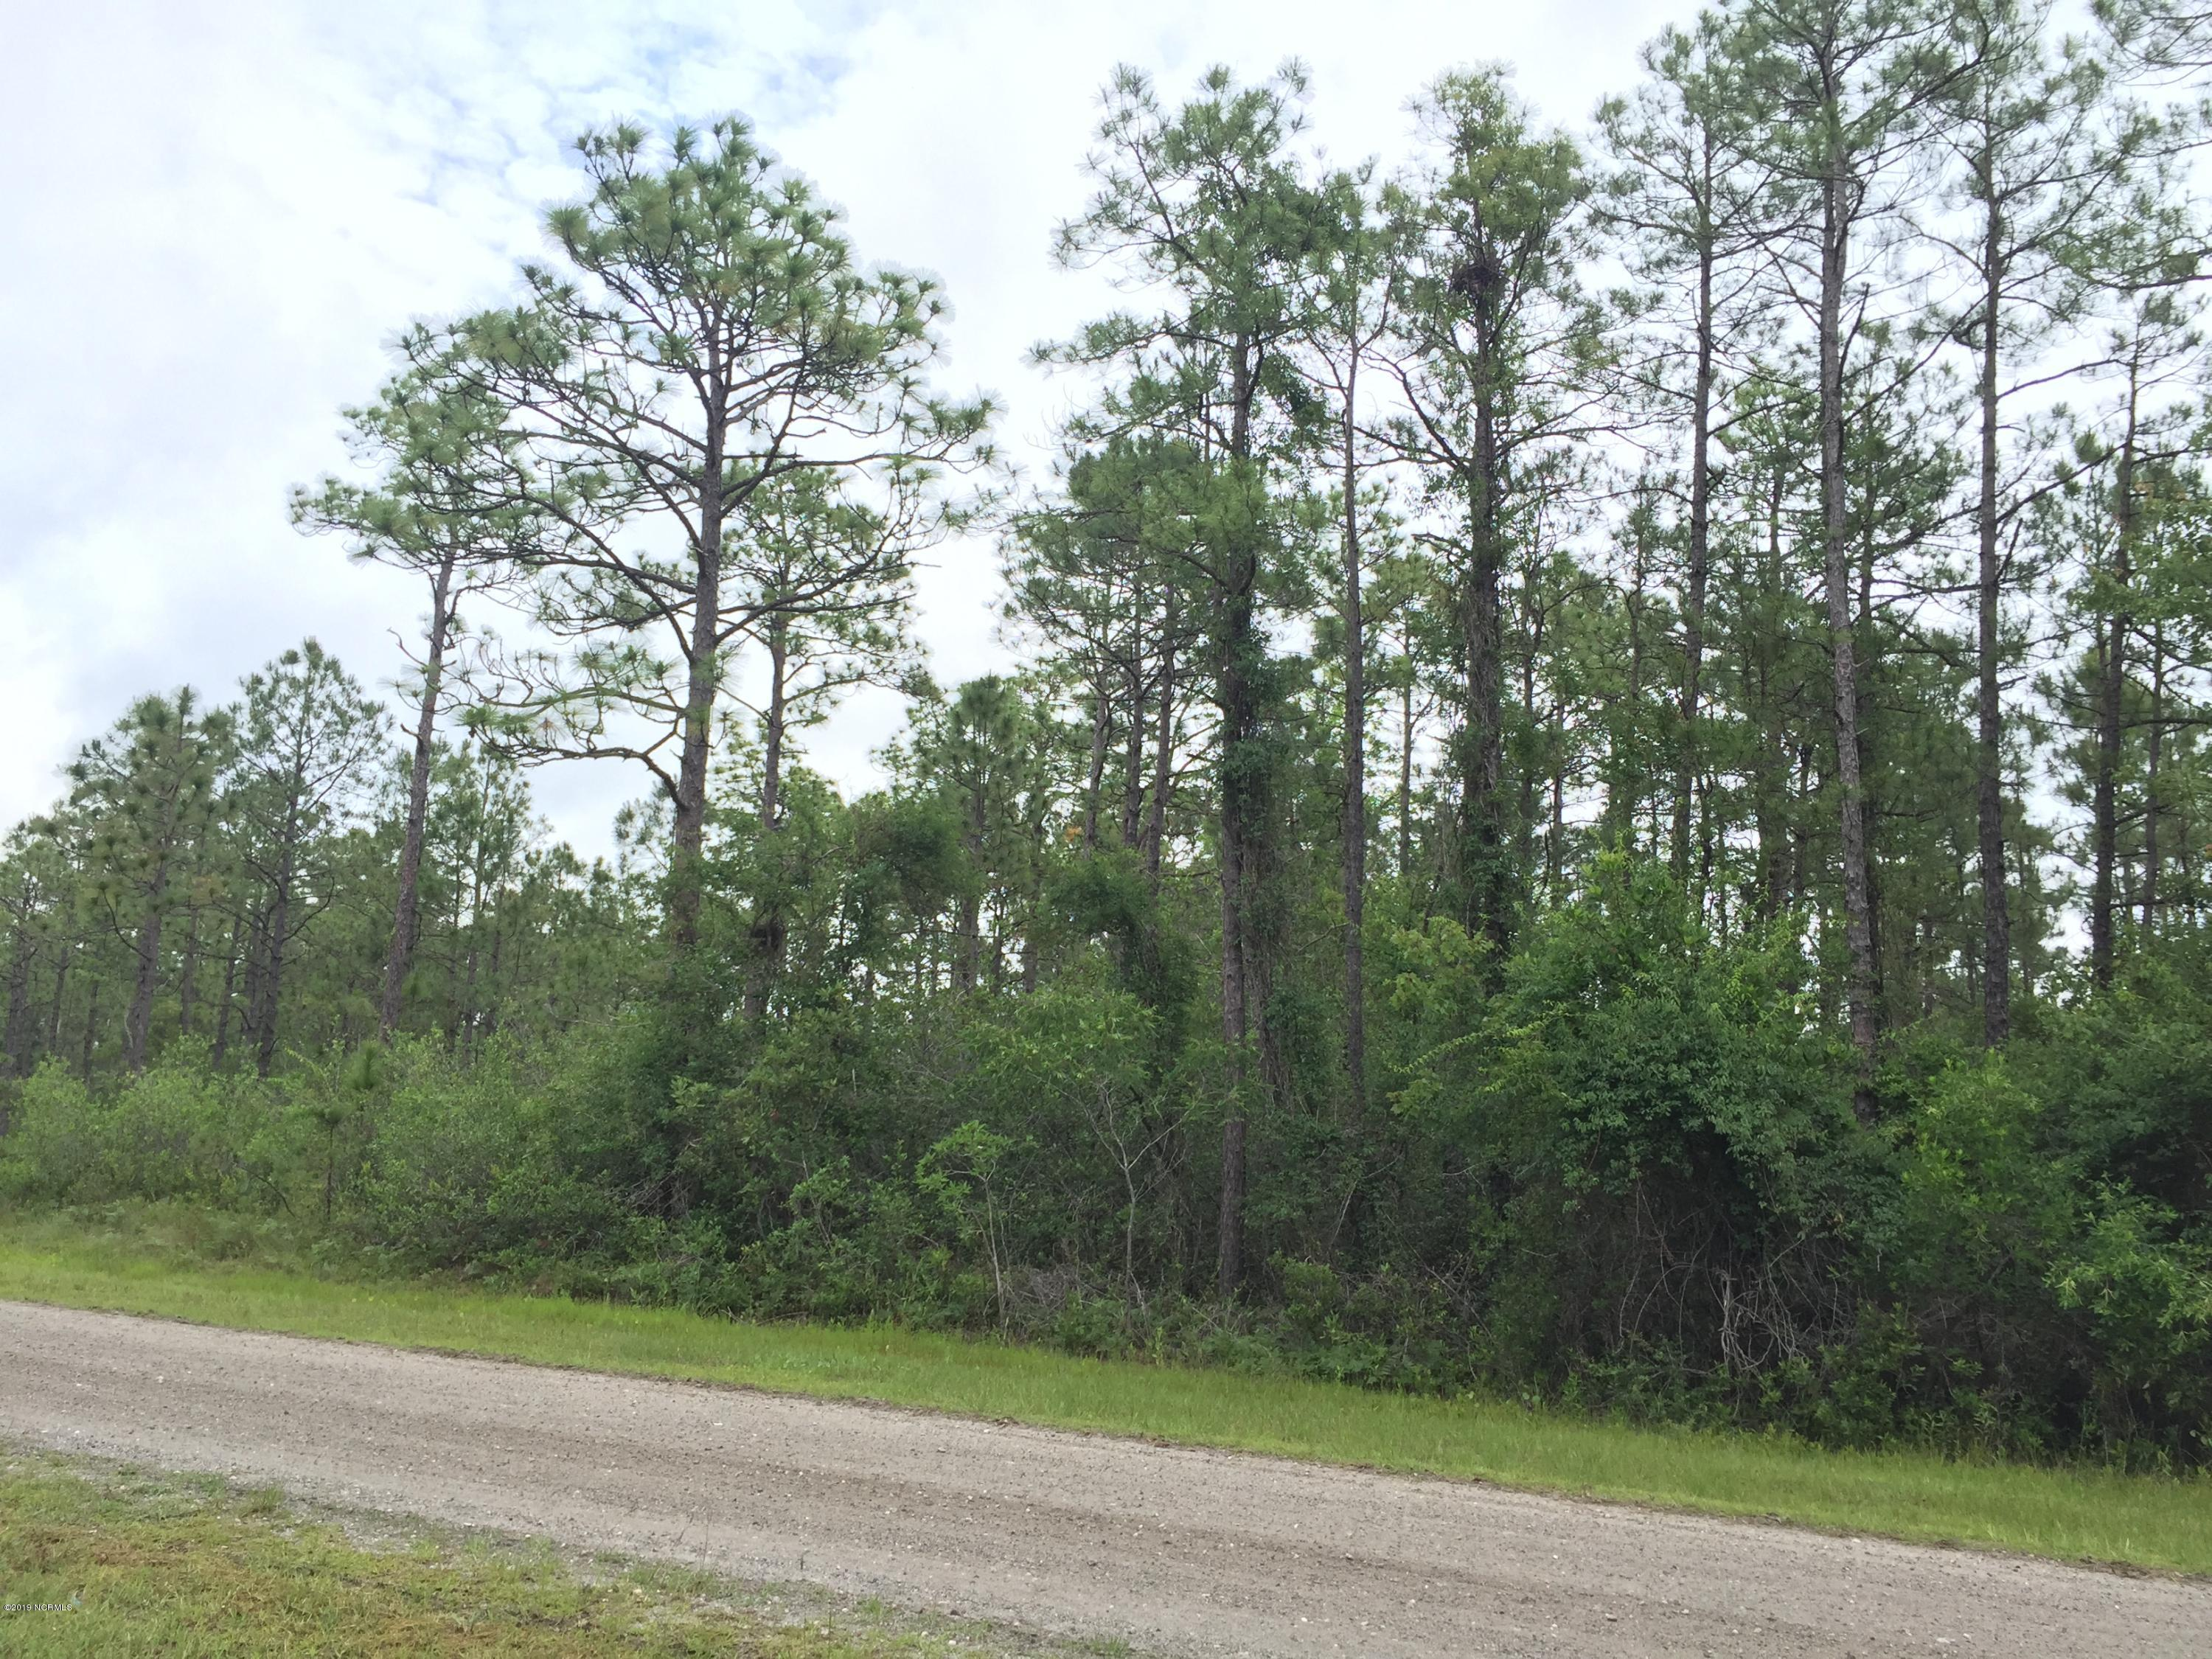 L202 & 203 Darnell Road, Southport, North Carolina 28461, ,Residential land,For sale,Darnell,100184305